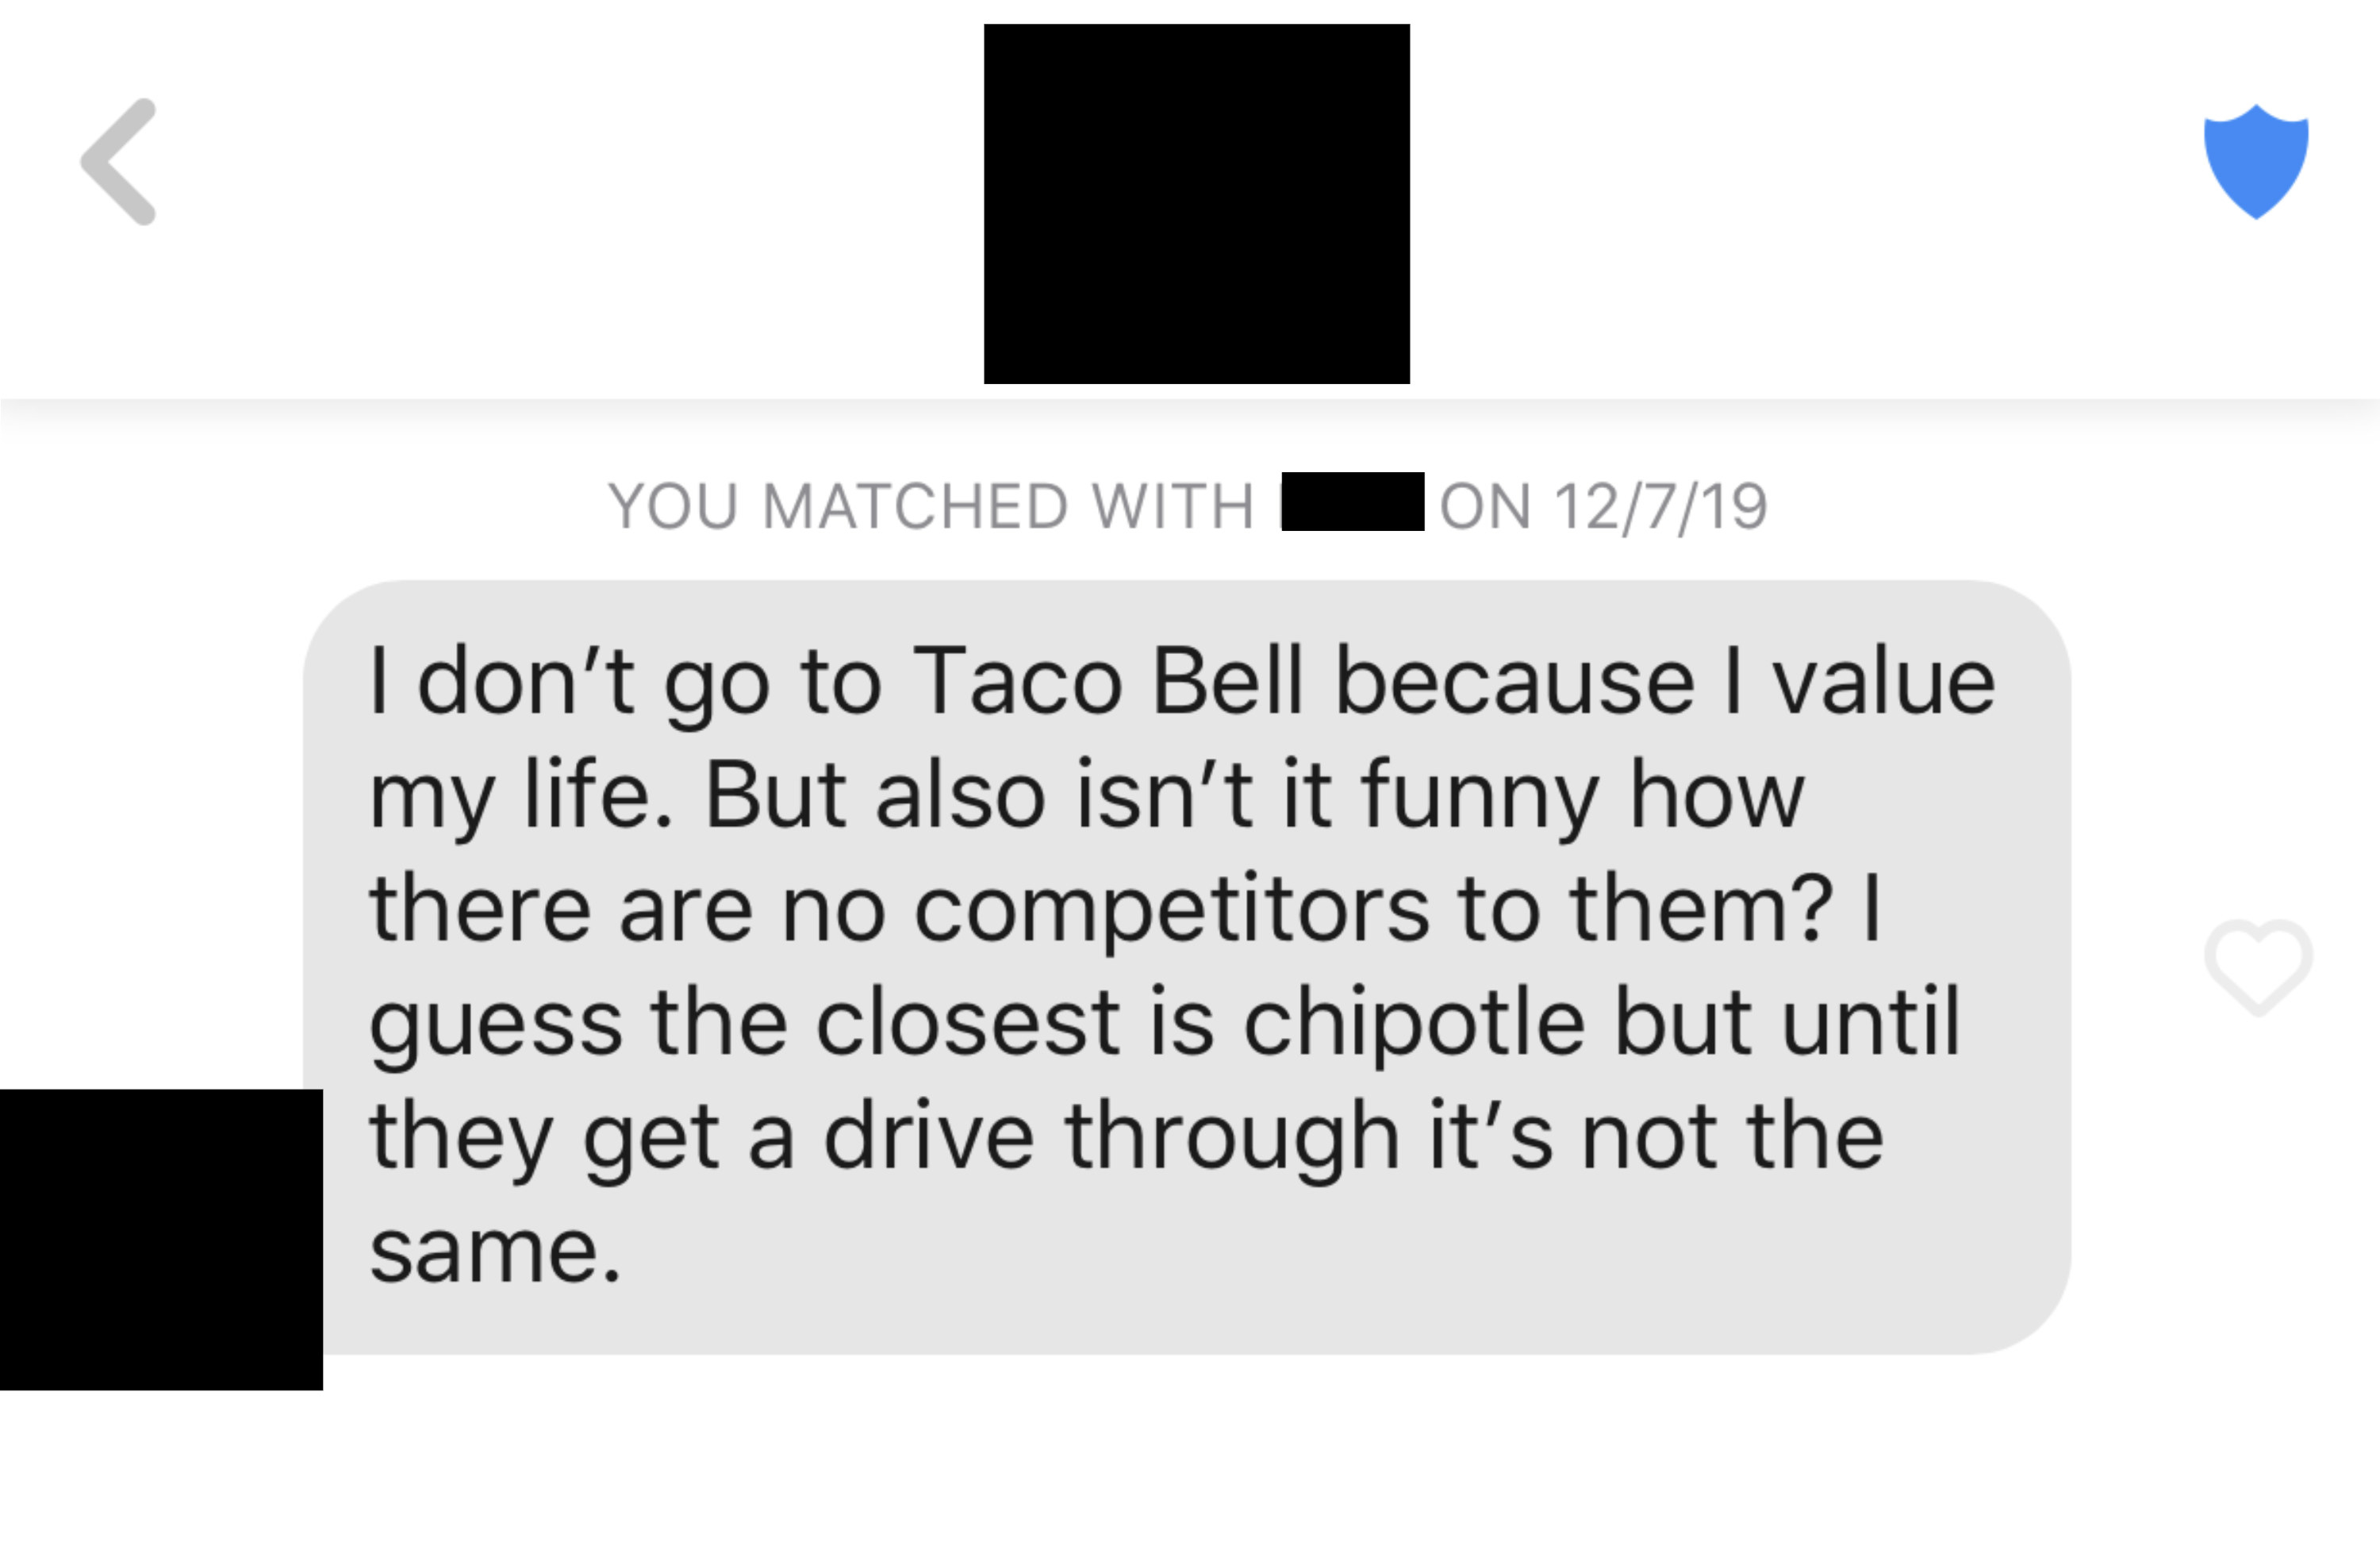 """Tinder message reading, """"I don't go to Taco Bell because I value my life. But also isn't it funny how there are no competitors to them? I guess the closest is chipotle but until they get a drive through it's not the same"""""""